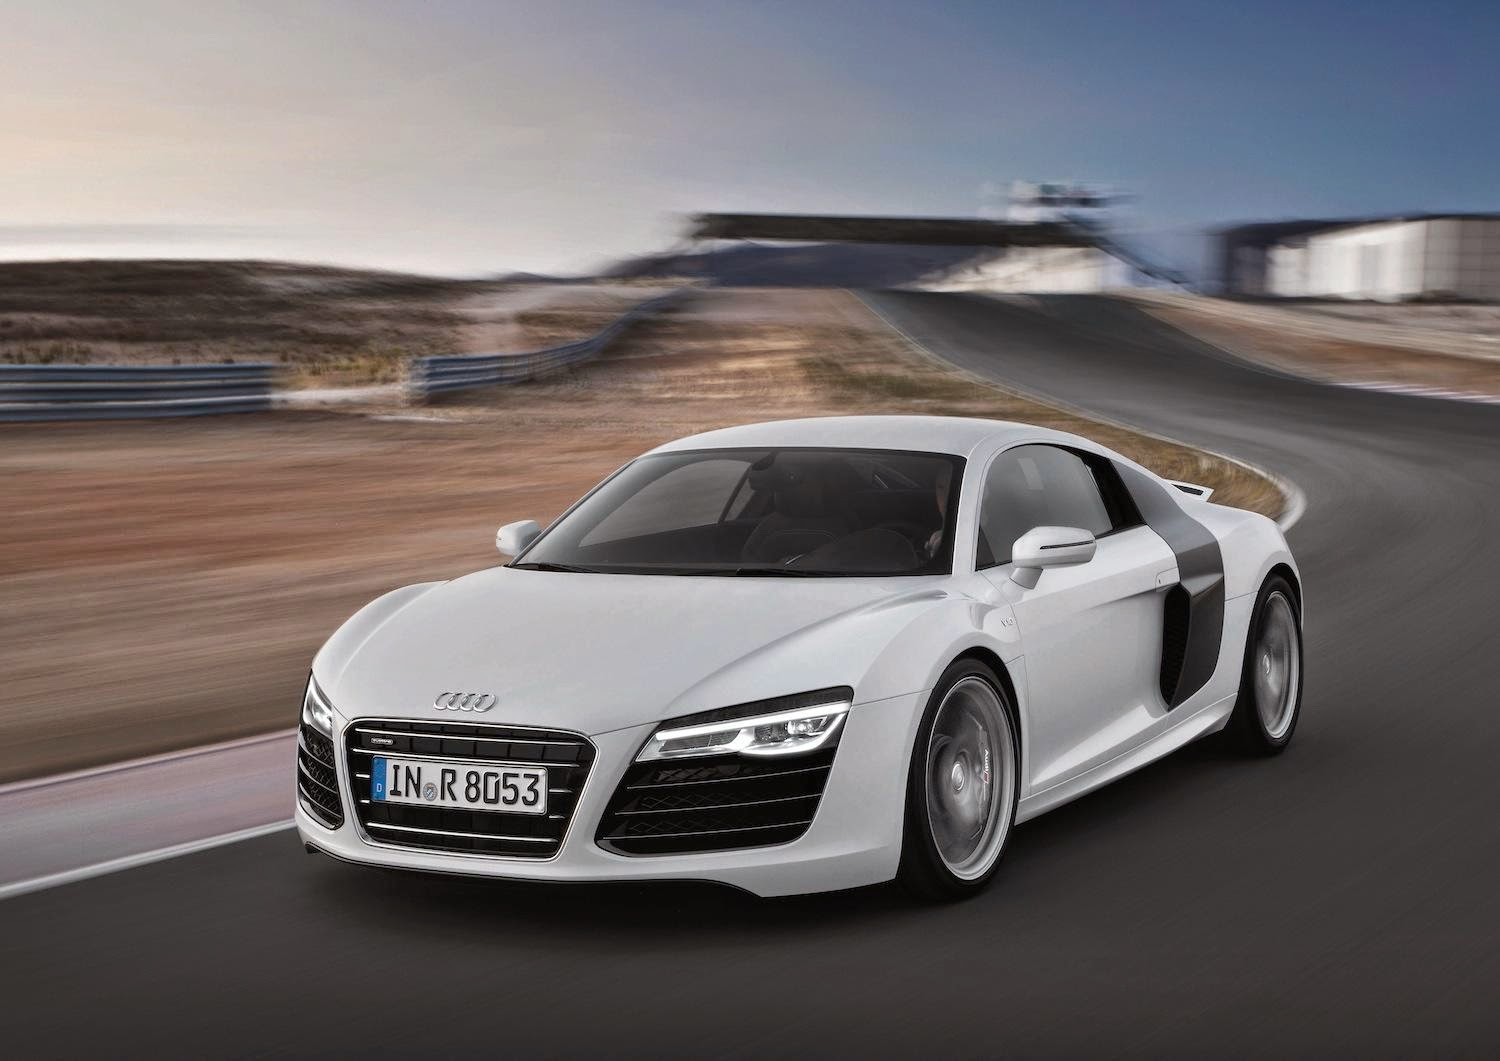 audi r8 2015 price top speed review. Black Bedroom Furniture Sets. Home Design Ideas